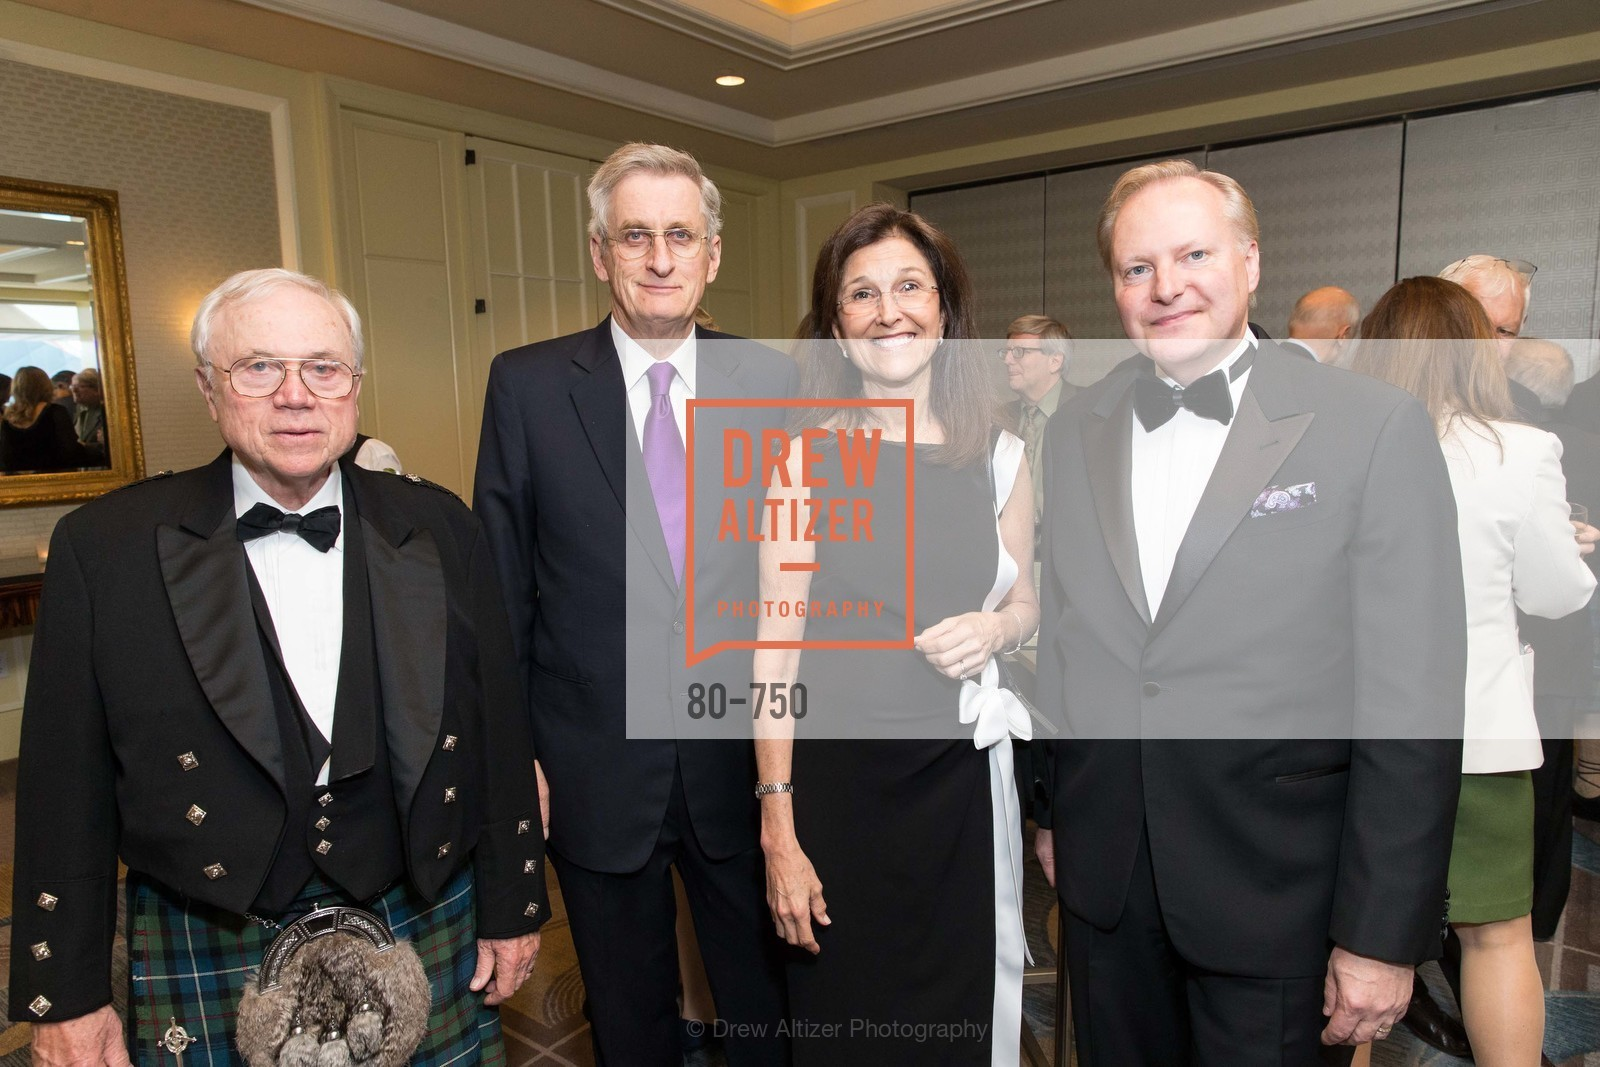 James Robertson, Ruediger Naumann-Etienne, Jane Wales, Brian James, WORLD AFFAIRS COUNCIL Awards Dinner, US, May 27th, 2015,Drew Altizer, Drew Altizer Photography, full-service agency, private events, San Francisco photographer, photographer california